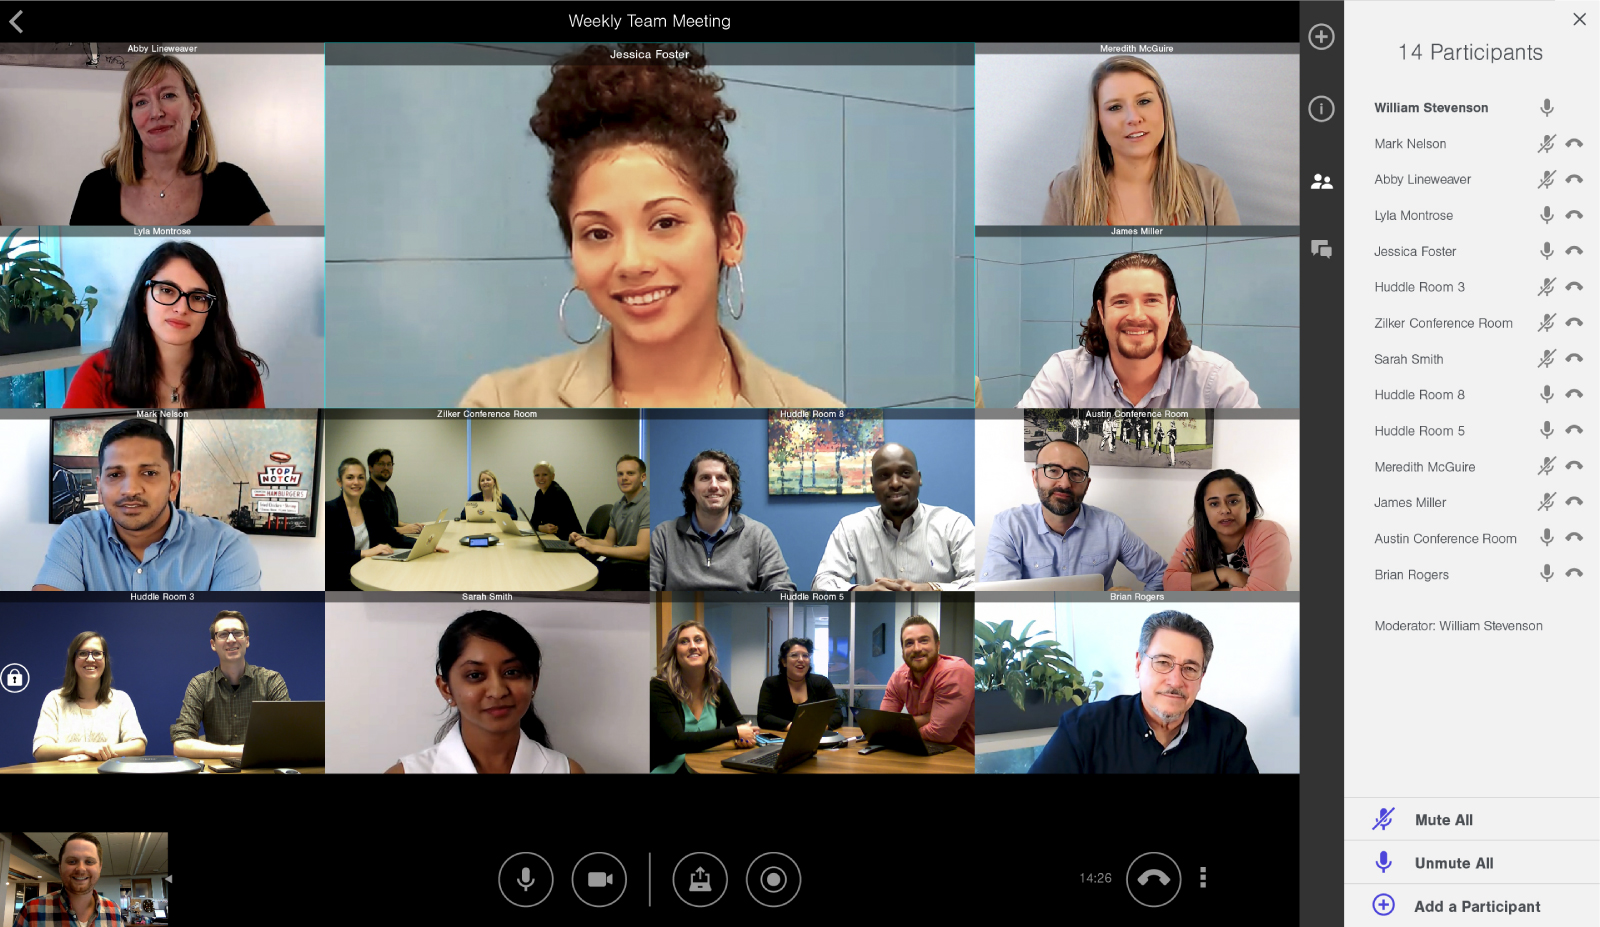 LifeSize Group video conference